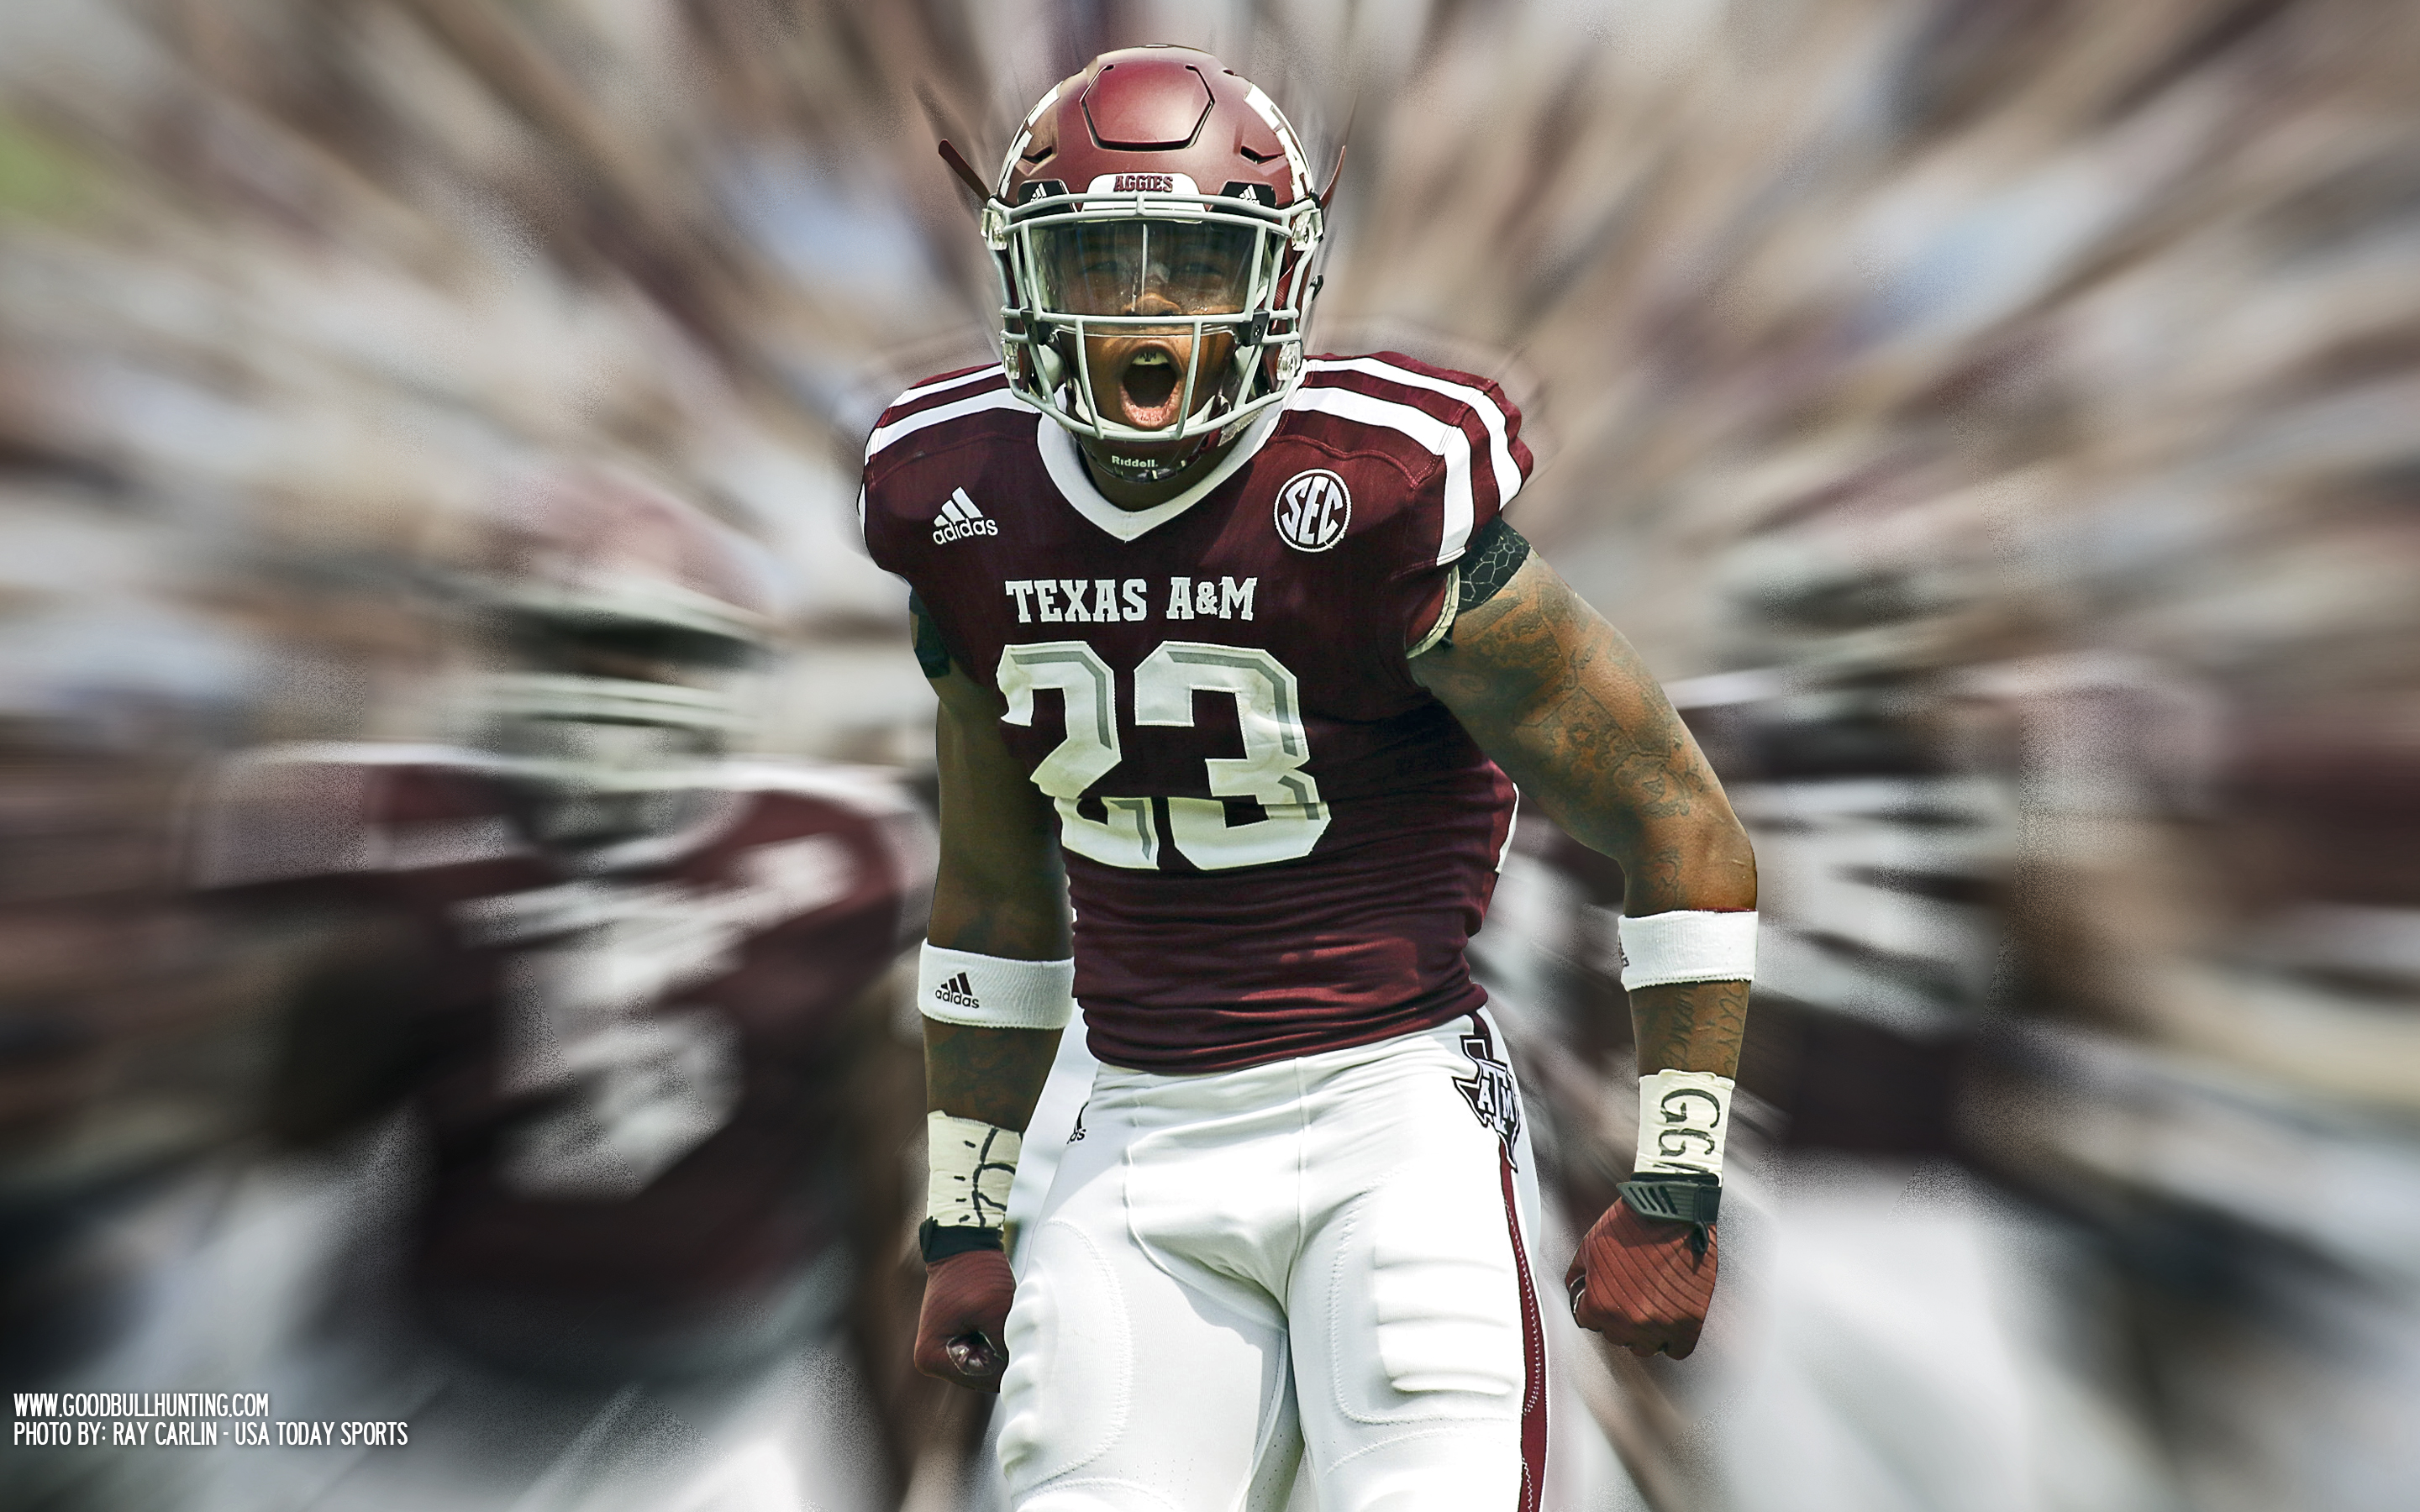 What will a m 39 dazzle camo 39 next good bull hunting for Sec football wallpaper